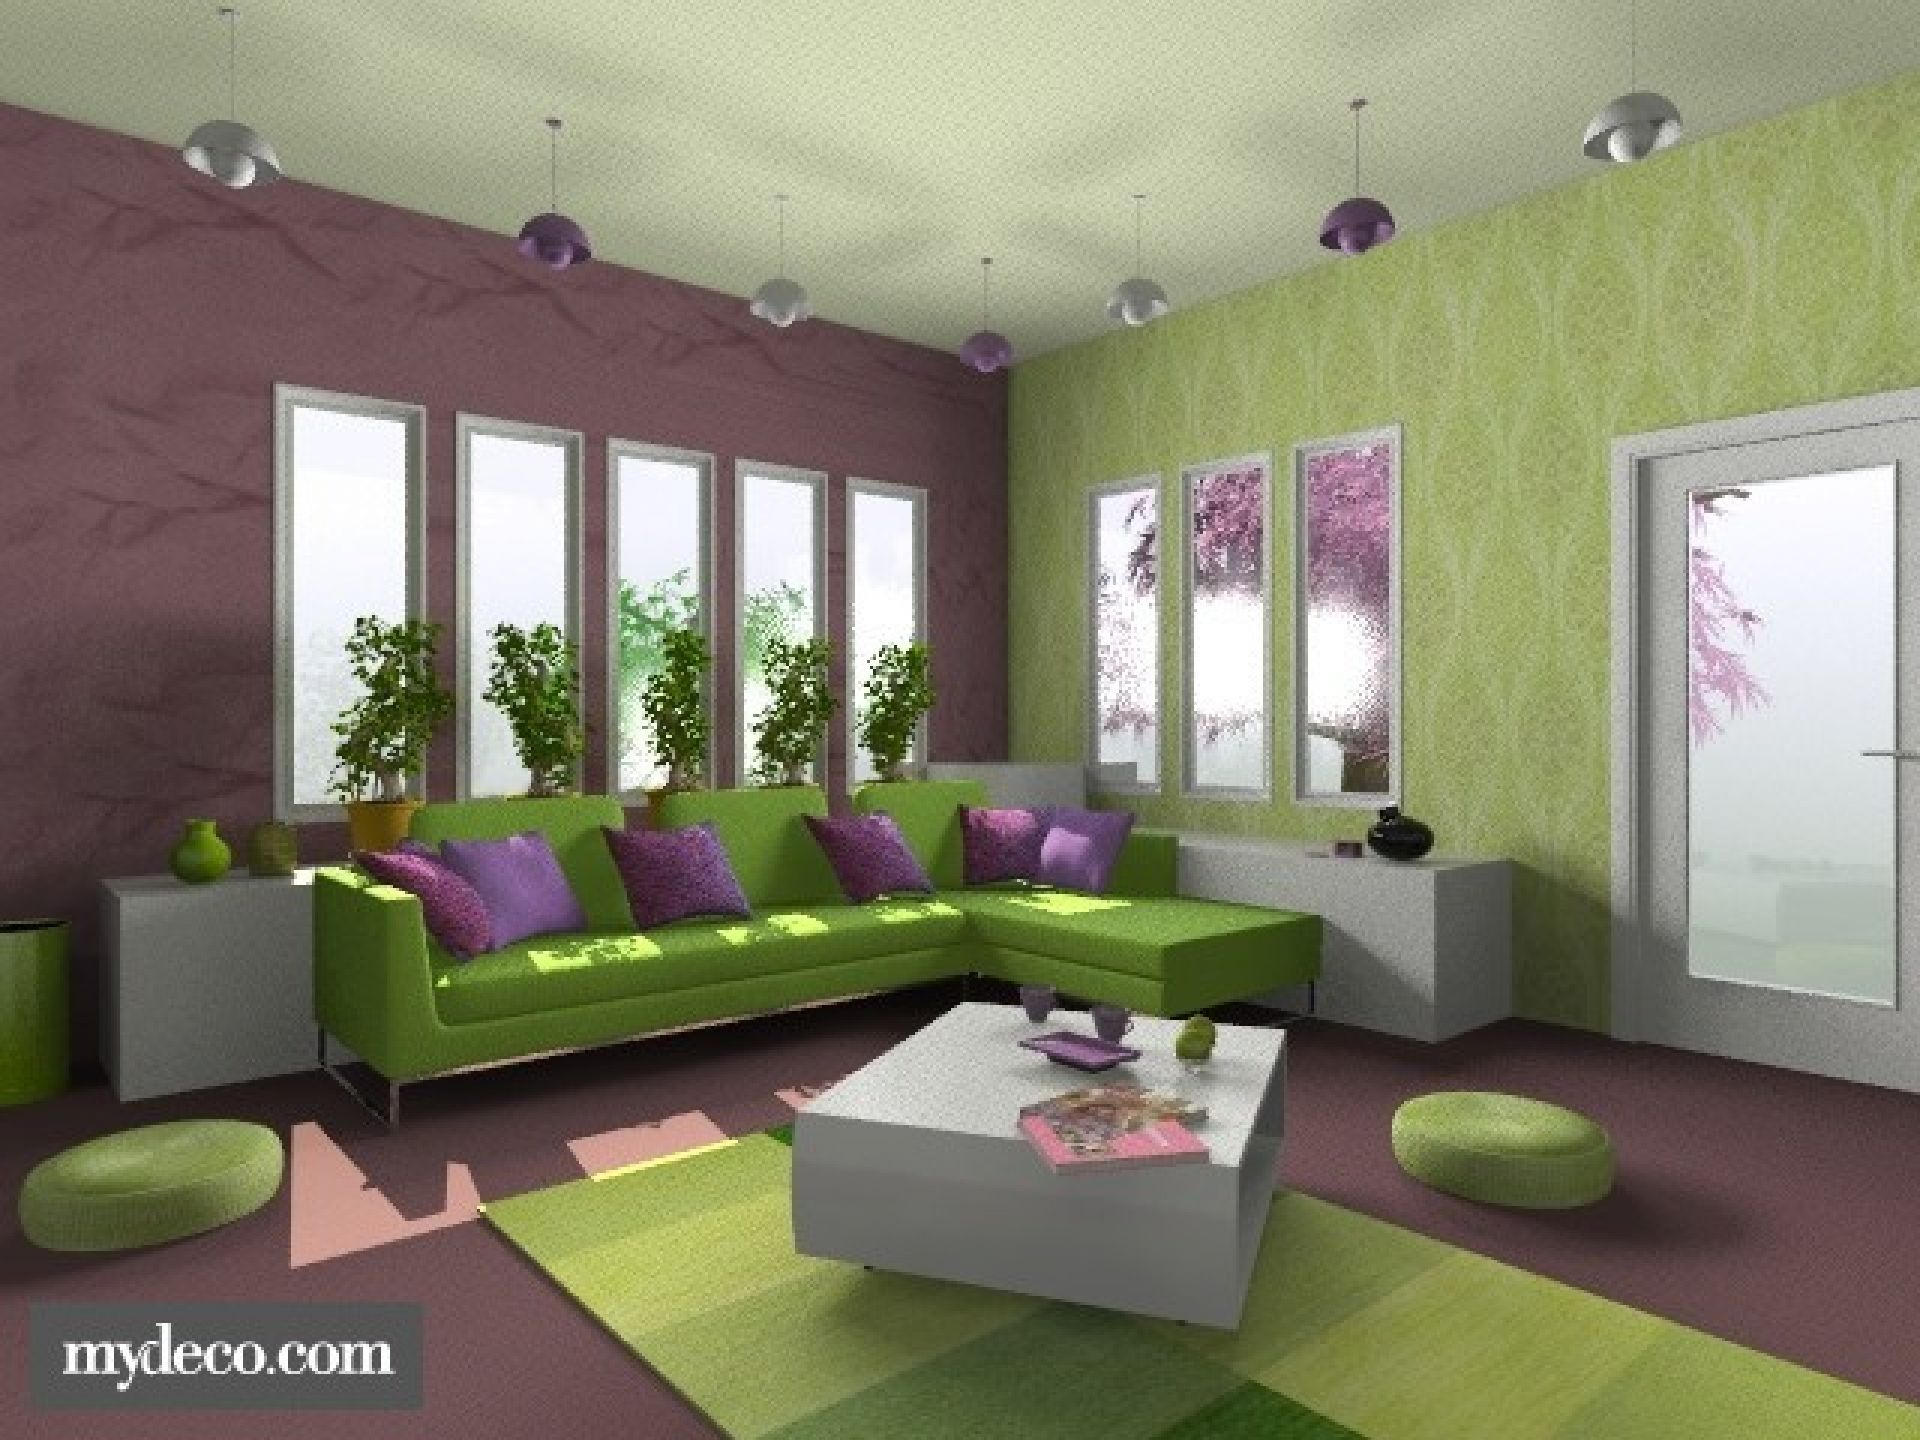 Bedroom Pictures Of Living Room Color Schemes Living Room Color